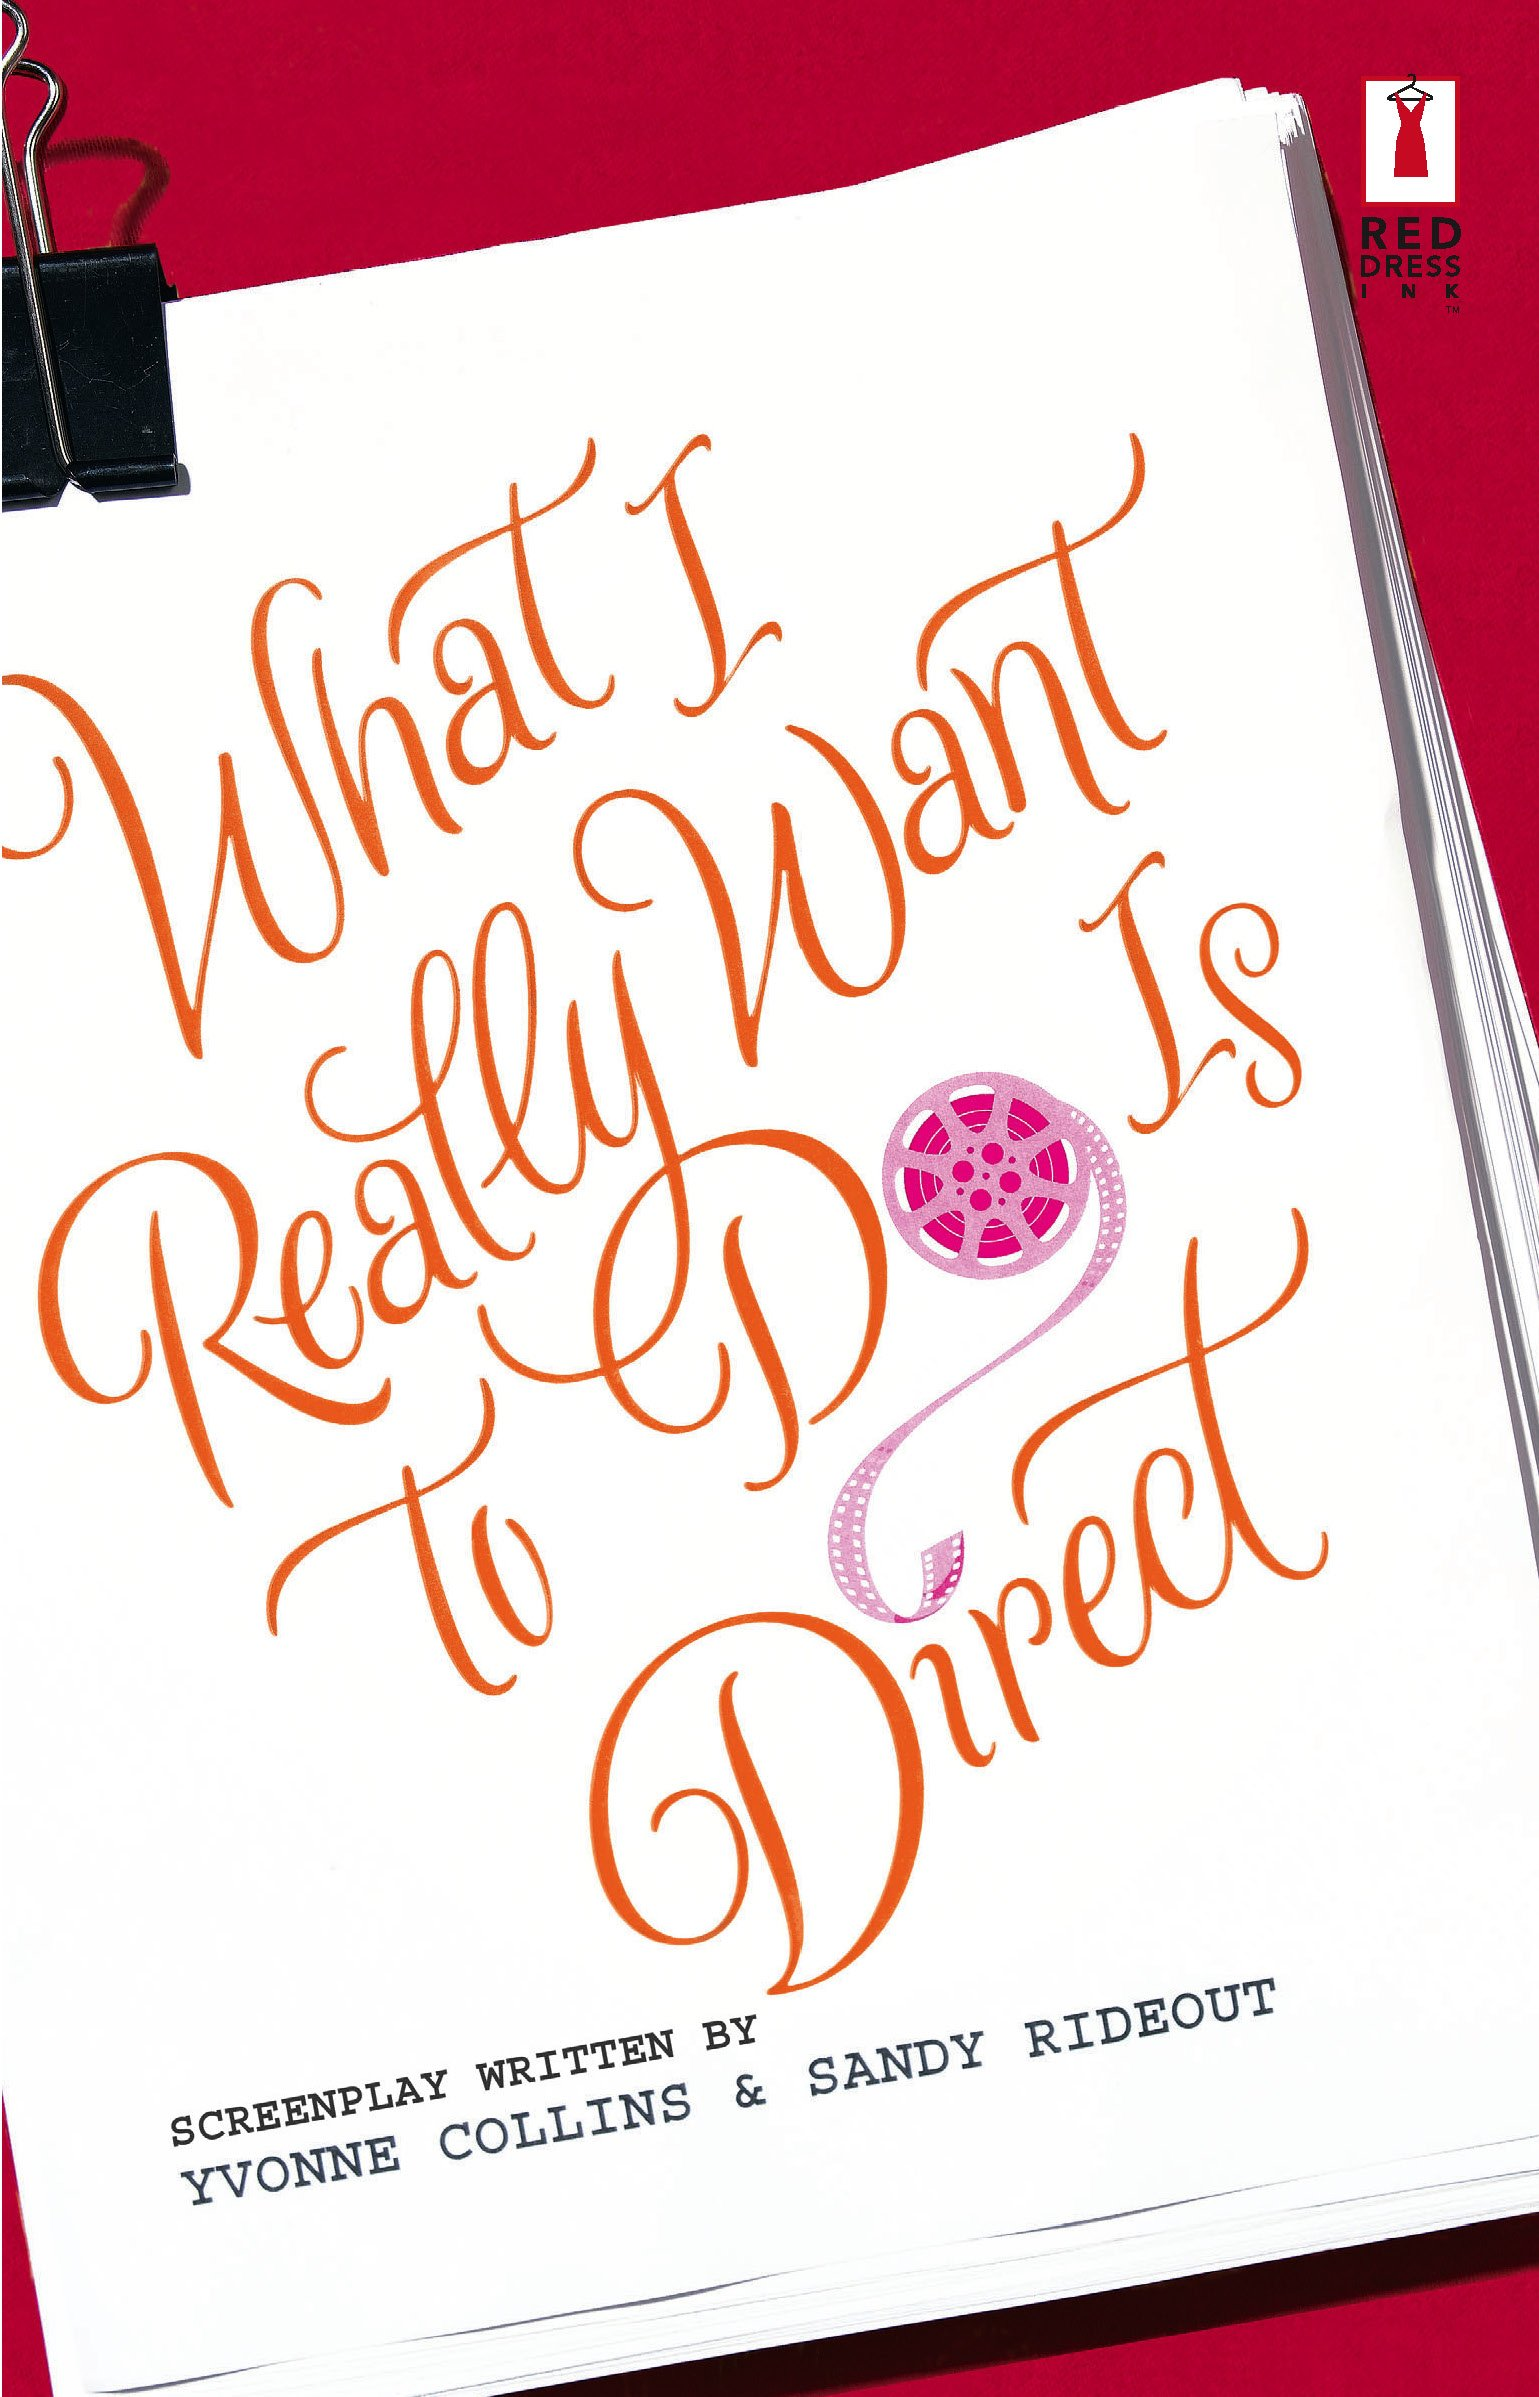 What I Really Want To Do Is Direct (Red Dress Ink Novels) ebook